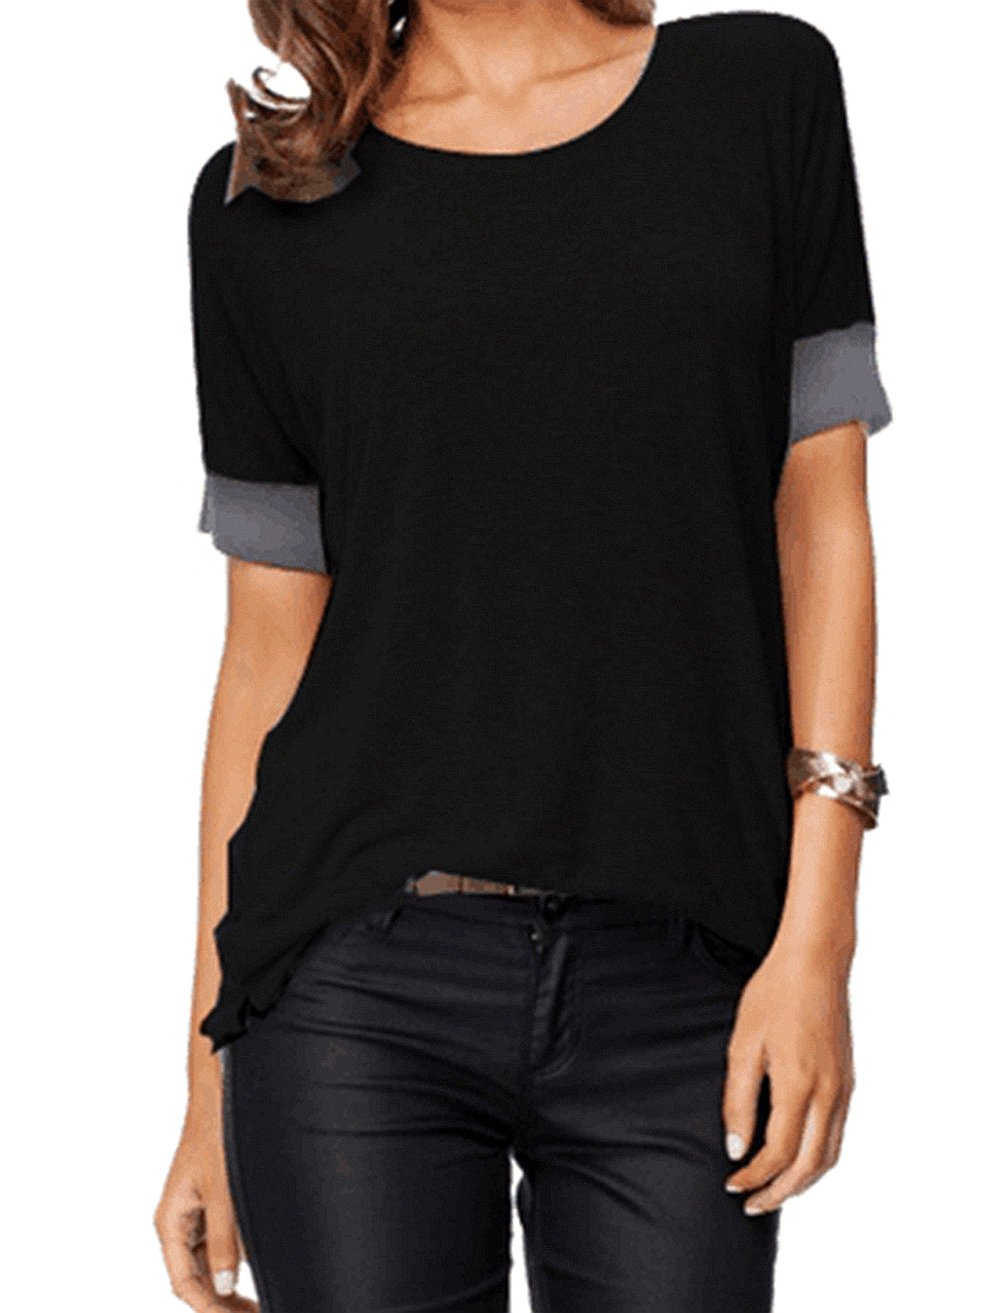 Sarin Mathews Women's Casual Round Neck Loose Fit Short Sleeve T-Shirt Blouse Tops Black XL